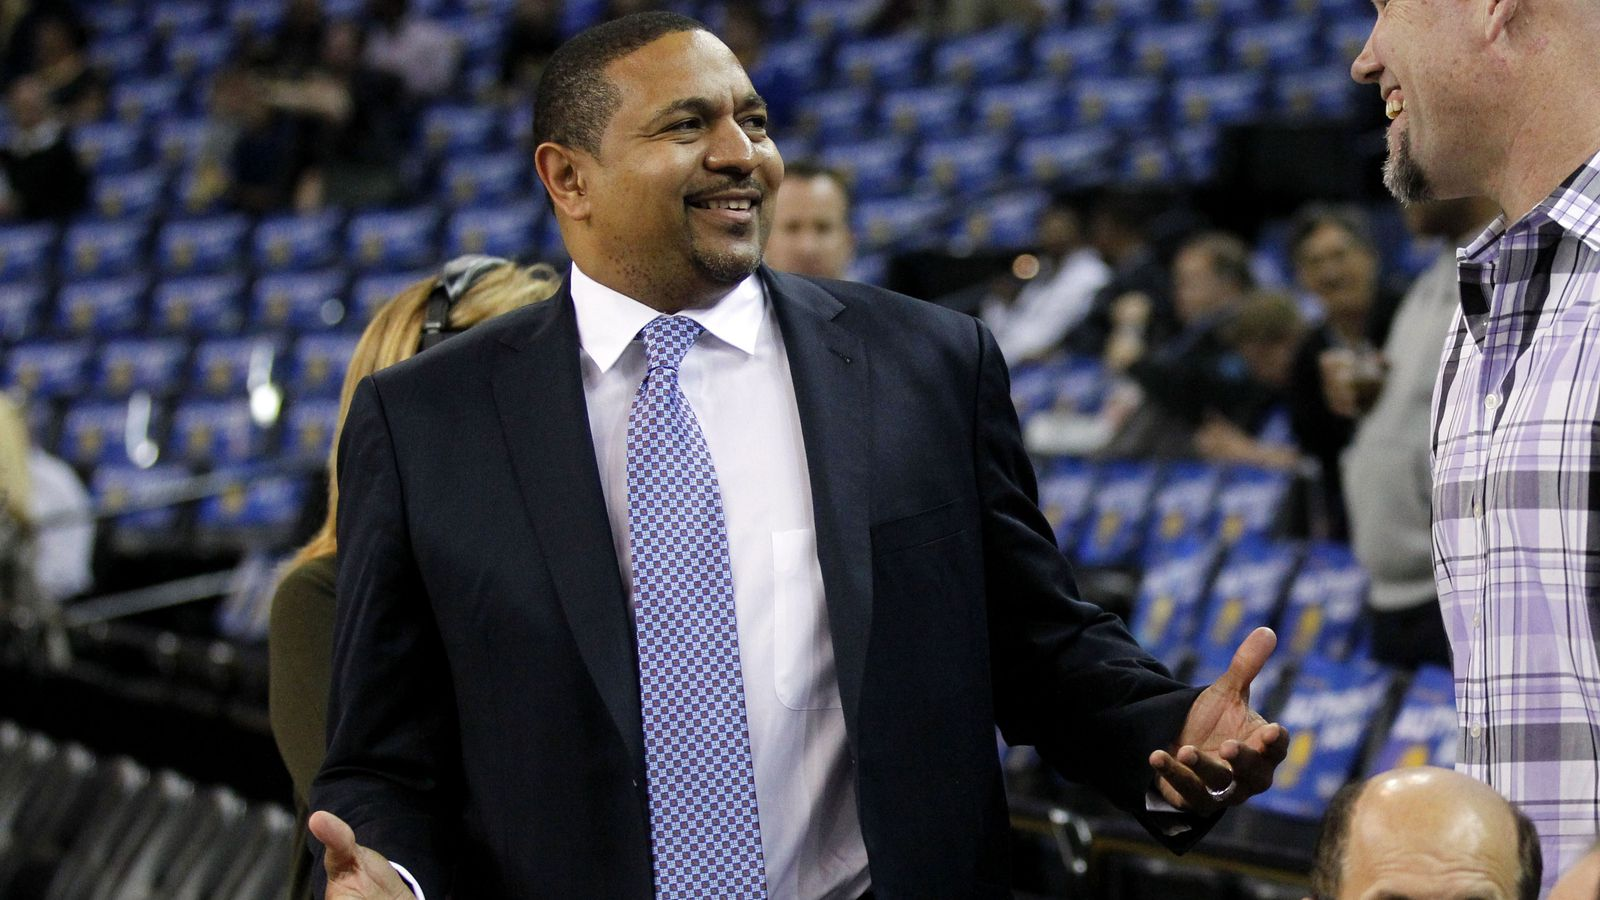 coach u0026 39 s resume  a review of mark jackson